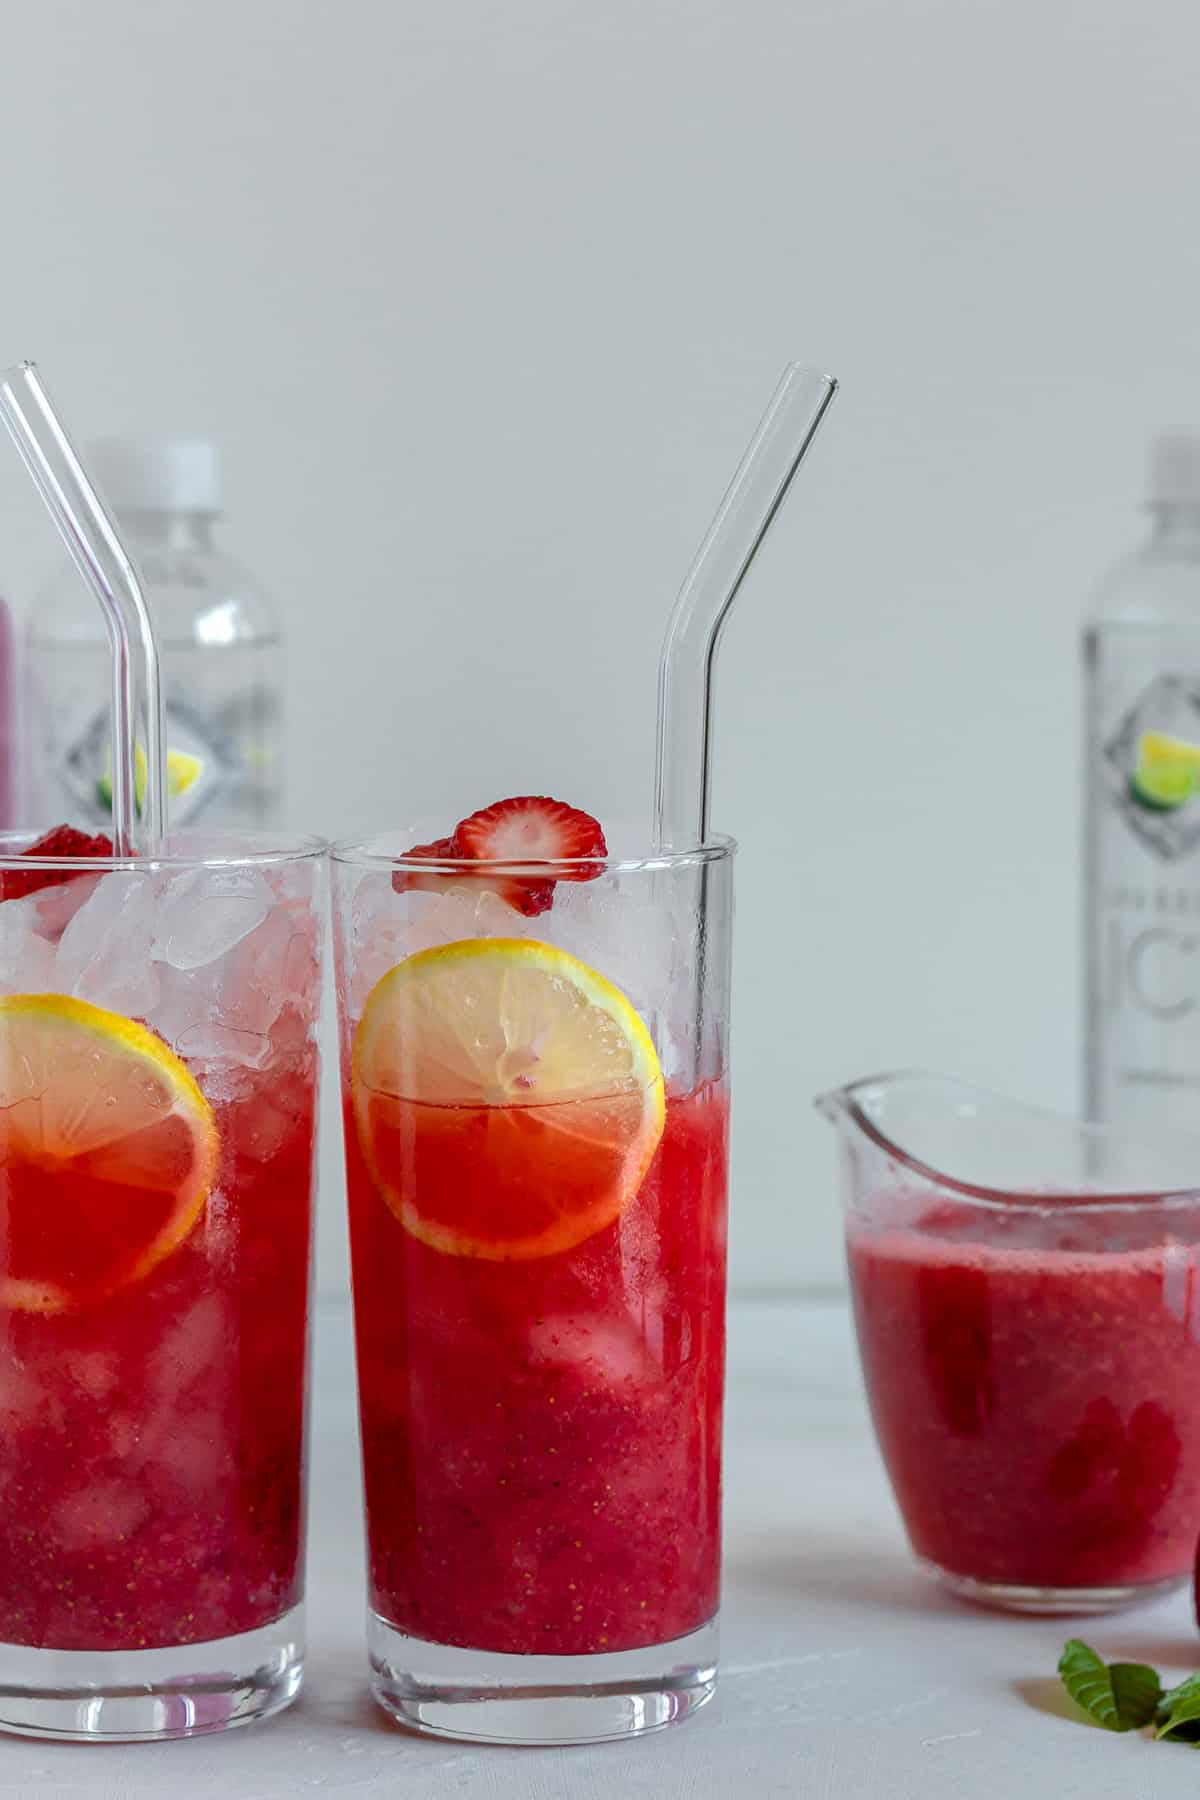 Skinny Sparkling Strawberry Vodka Cocktails